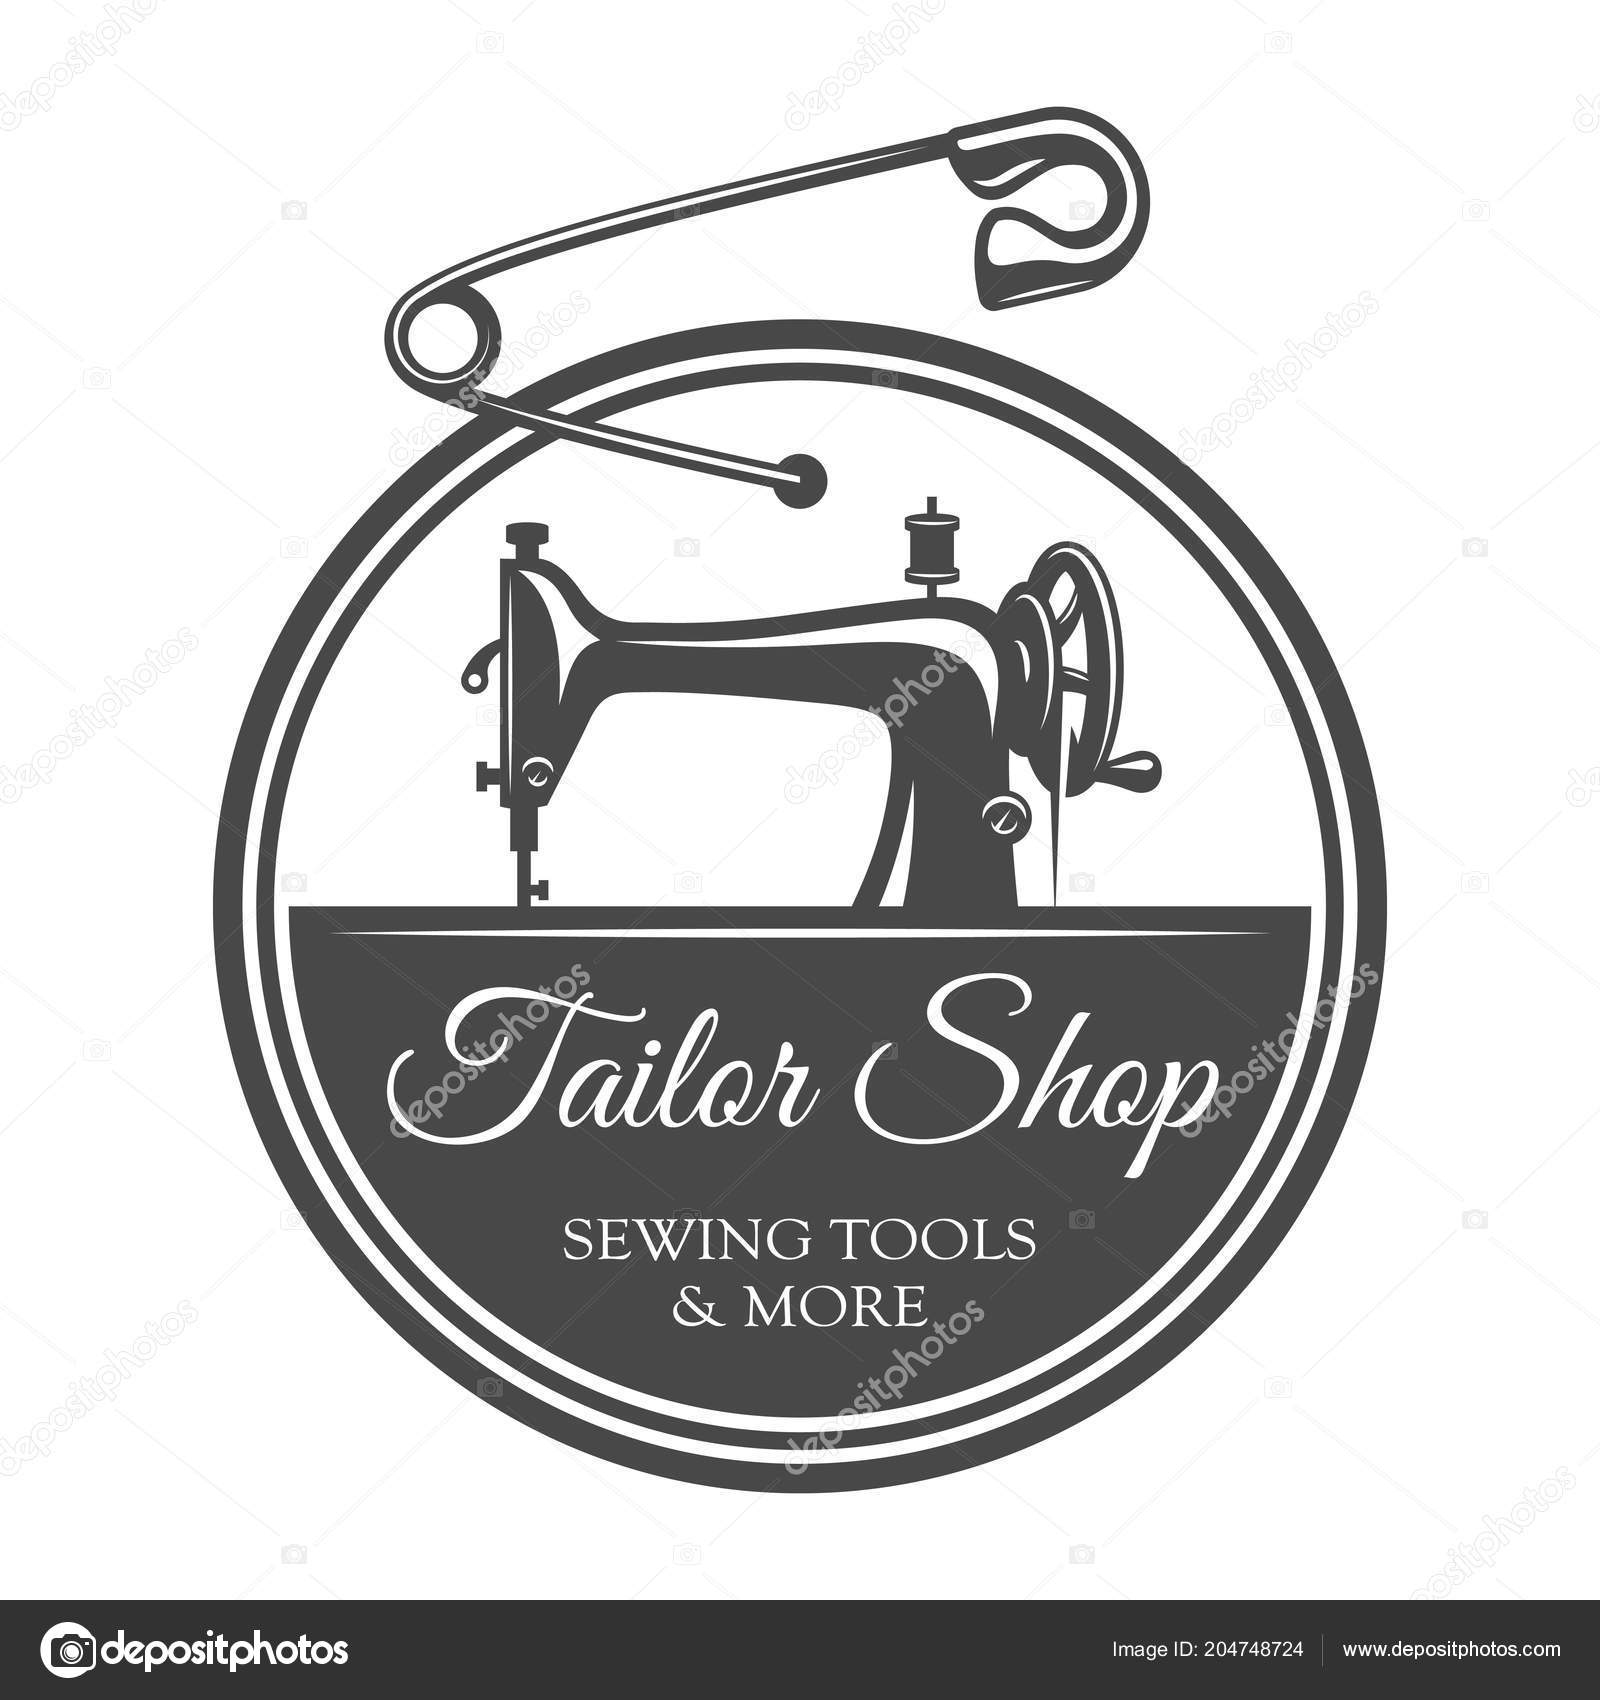 Vintage tailoring round label template — Stock Vector © IMOGI #204748724